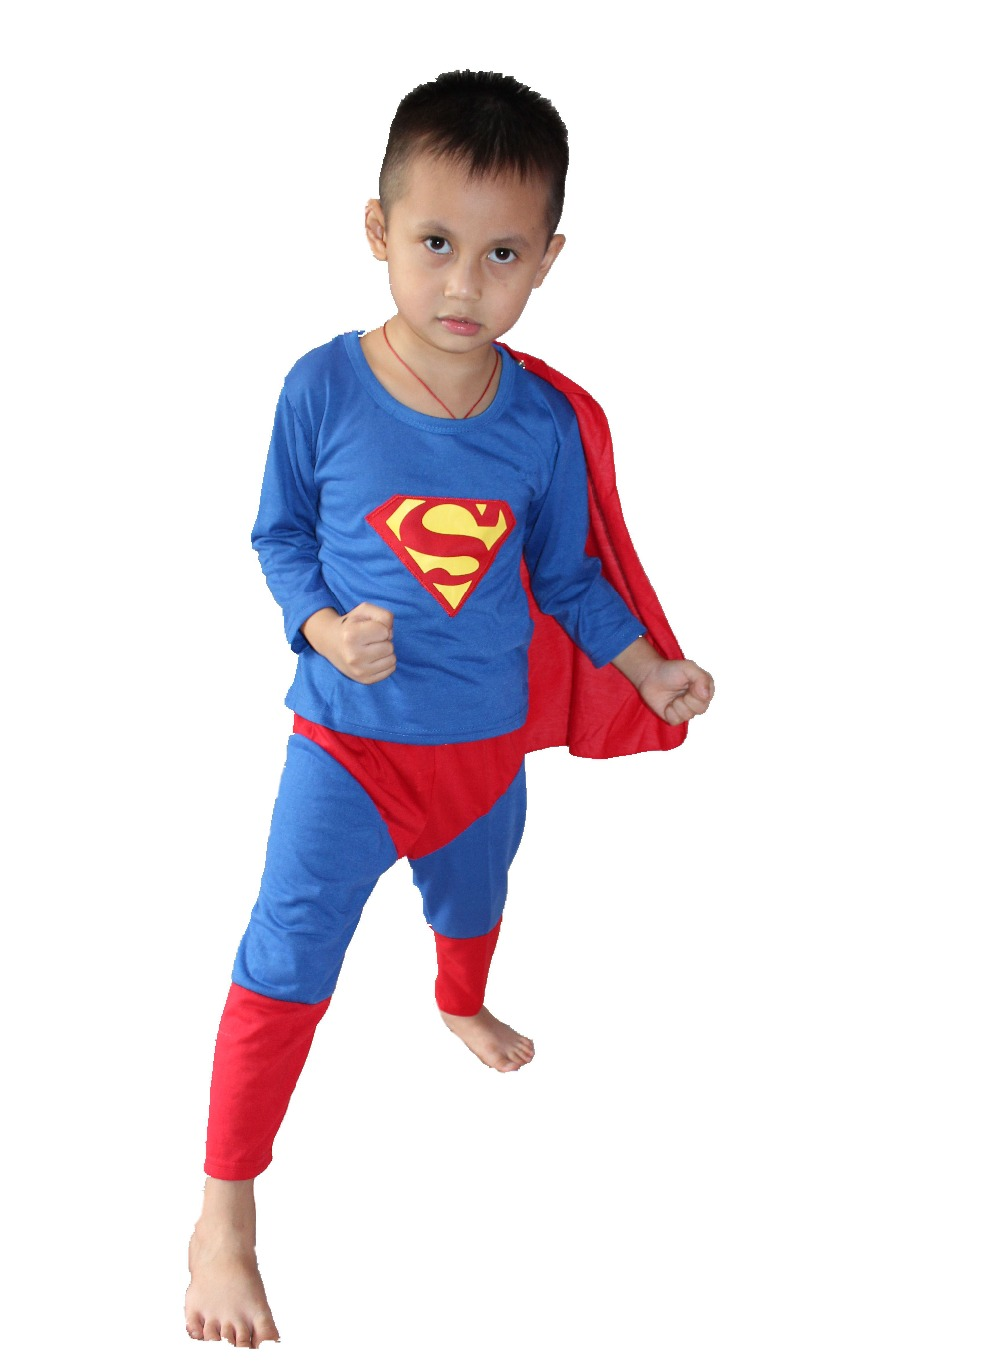 detaljhandel - Halloween Party kostymer Hallowmas 3 - 7 år barn superman Spela kläder / Boy superman kostym Cosplay T-shirt